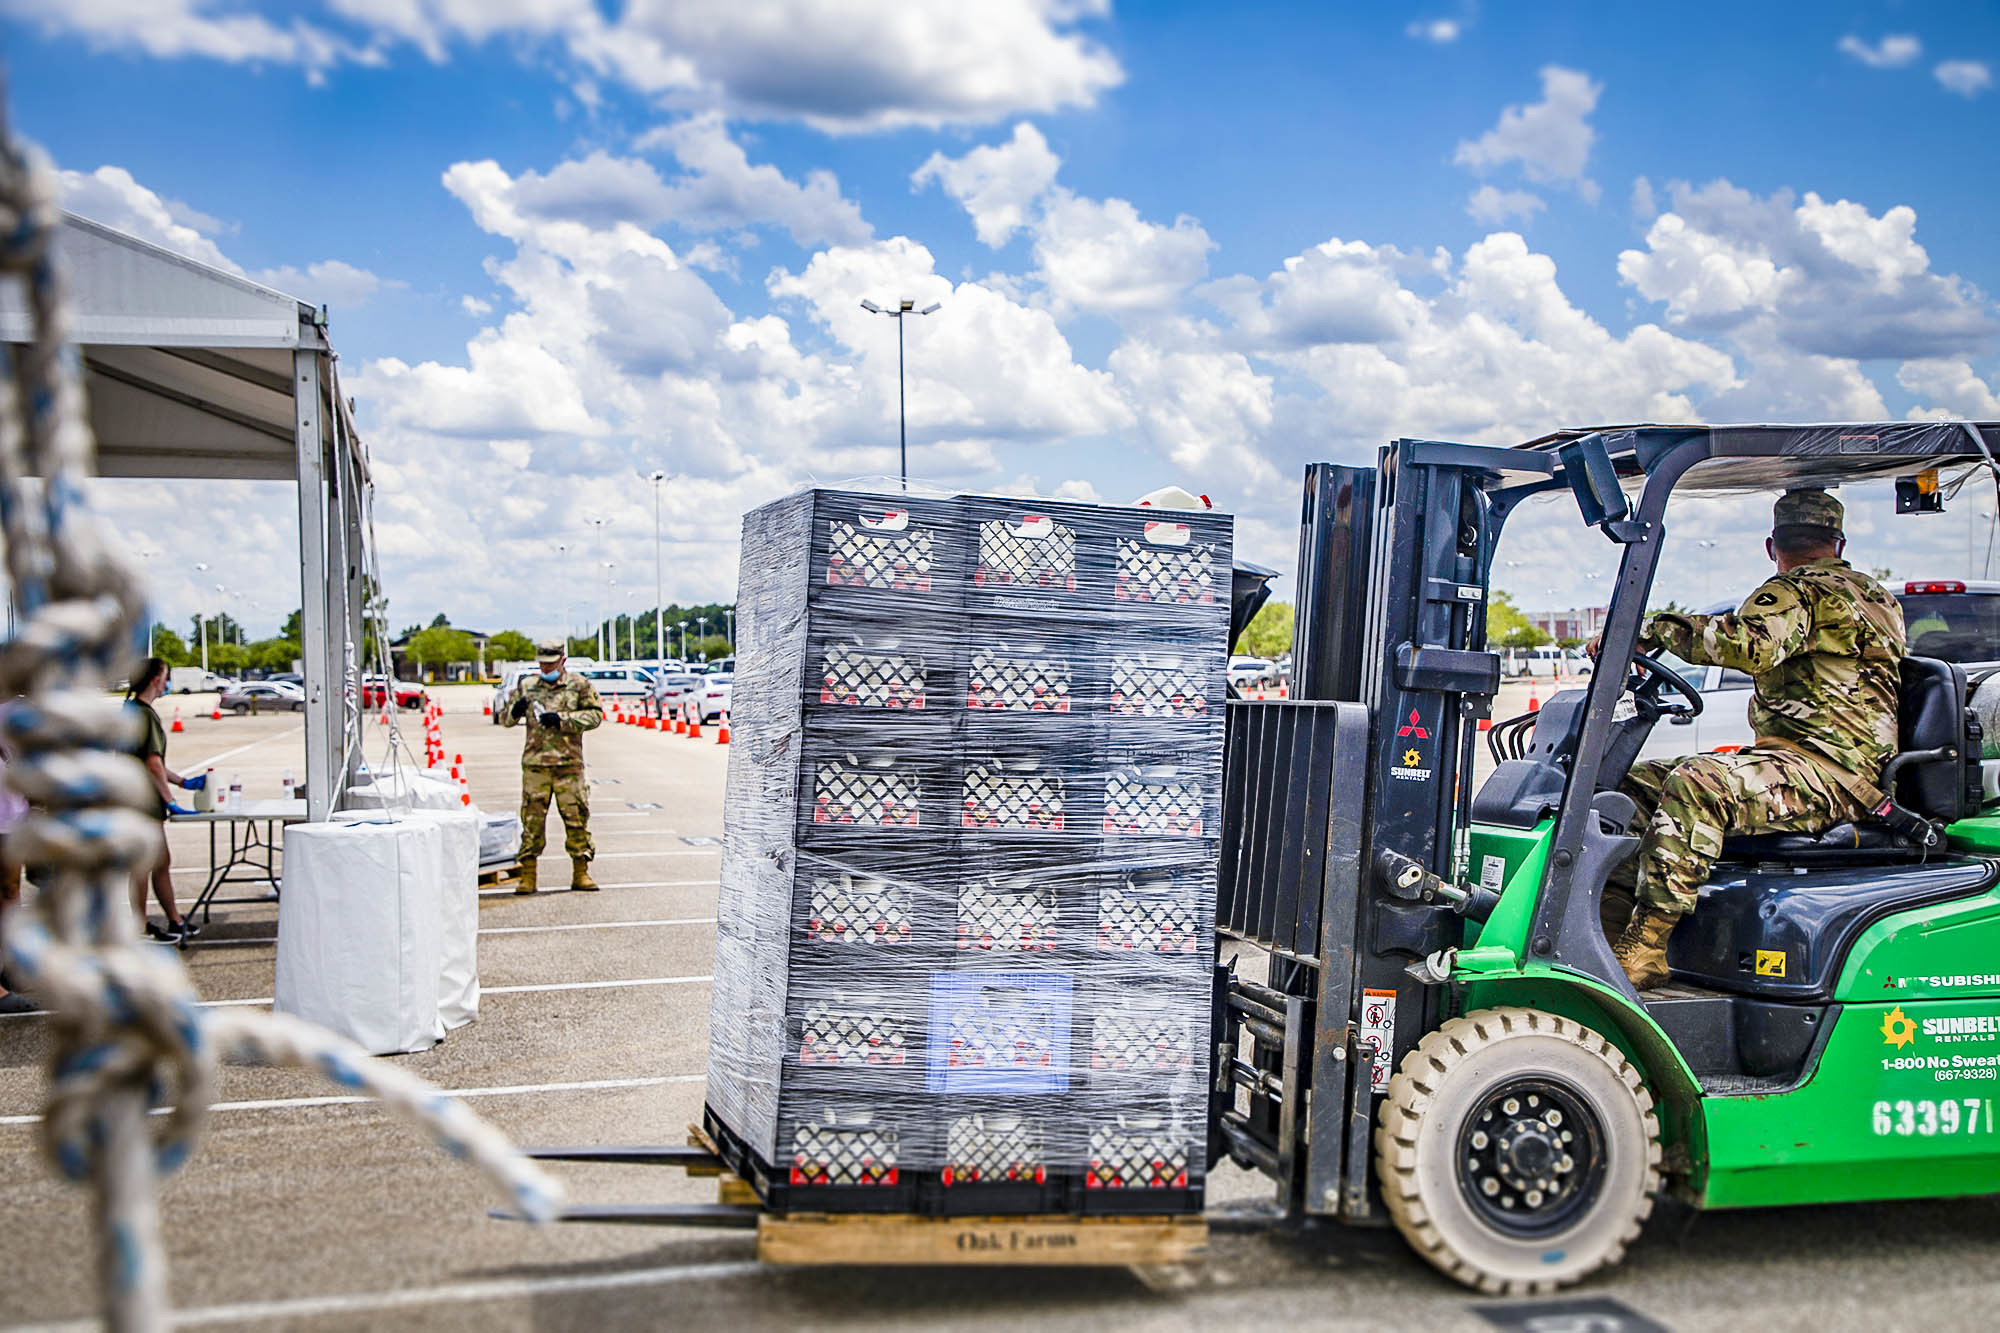 The National Guard has provided hundreds of hours of volunteer support at the Houston and Atlanta Community Food Bank.